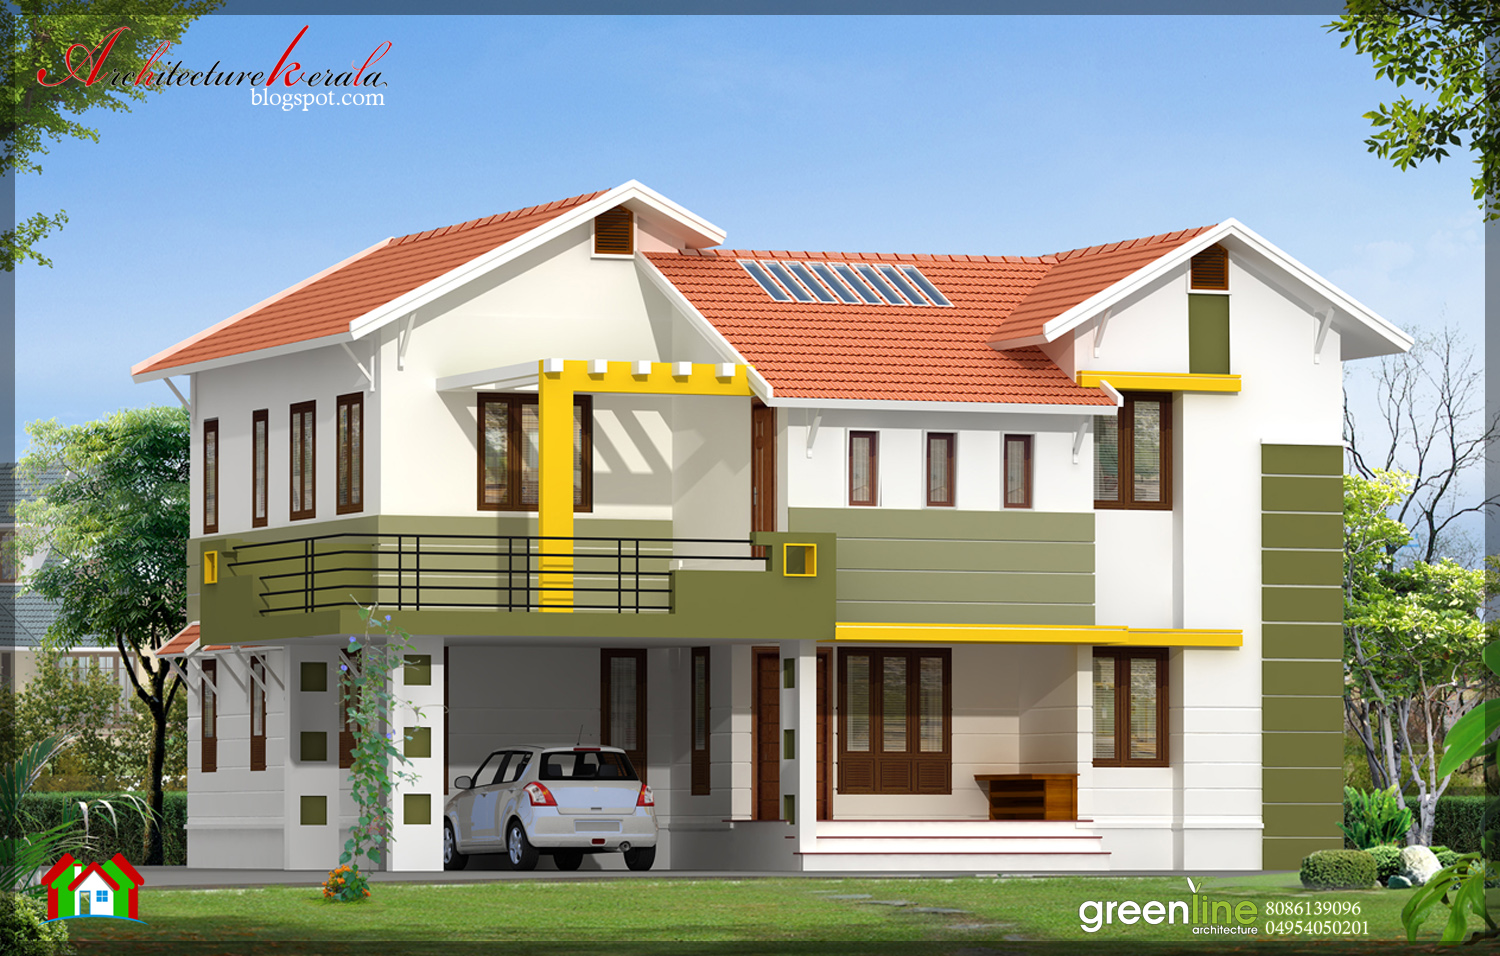 Architecture kerala 4 bhk contemporary style indian home Indian house structure design